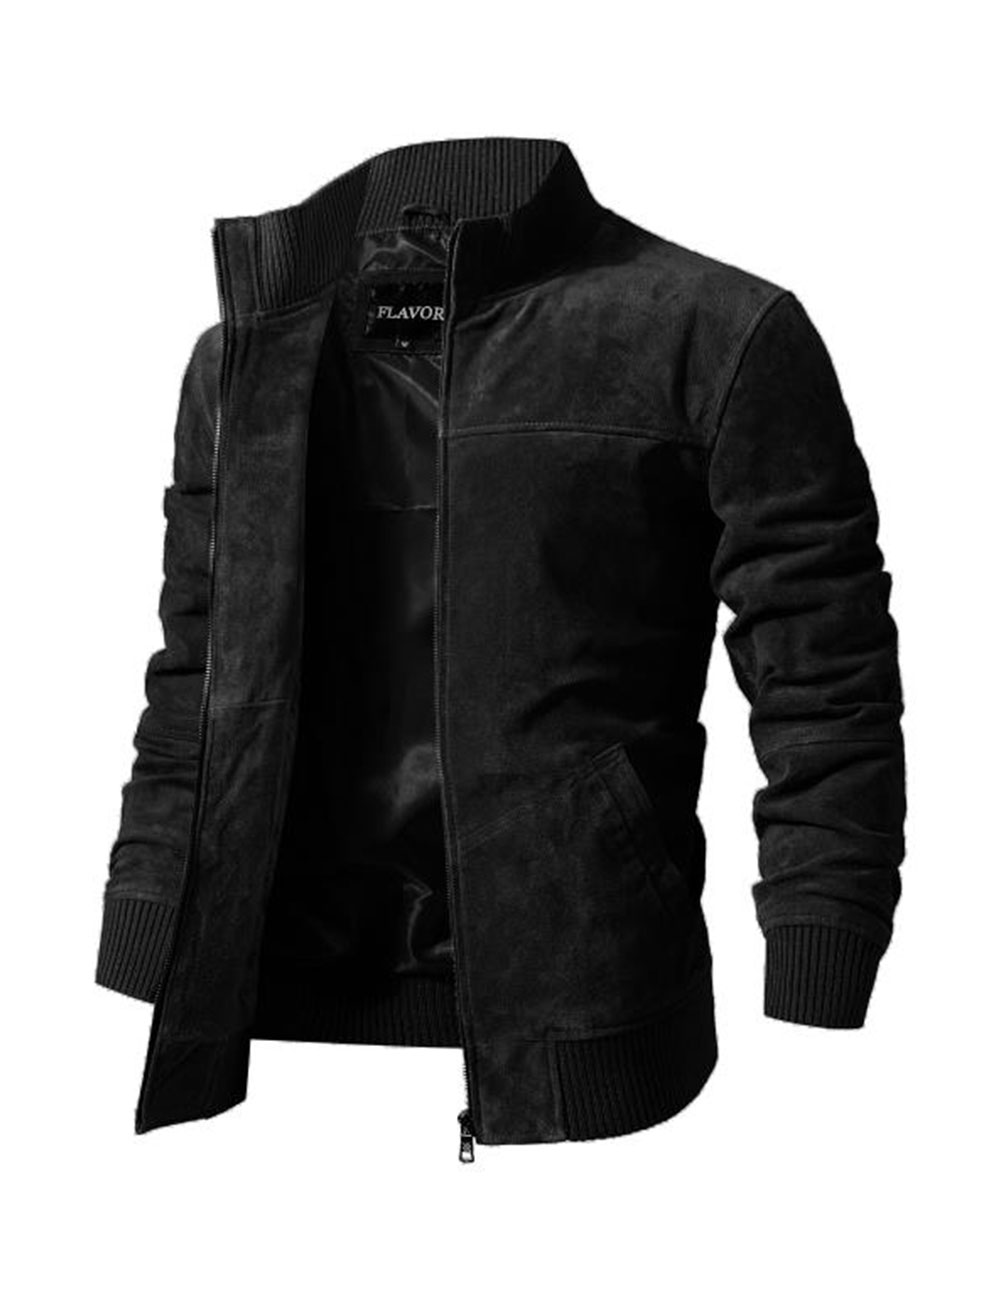 HTB1P9cTXvQypeRjt bXq6yZuXXak FLAVOR Men's Real Leather Jacket Men Pigskin Slim Fit Genuine Leather Coat With Rib Cuff Standing Collar